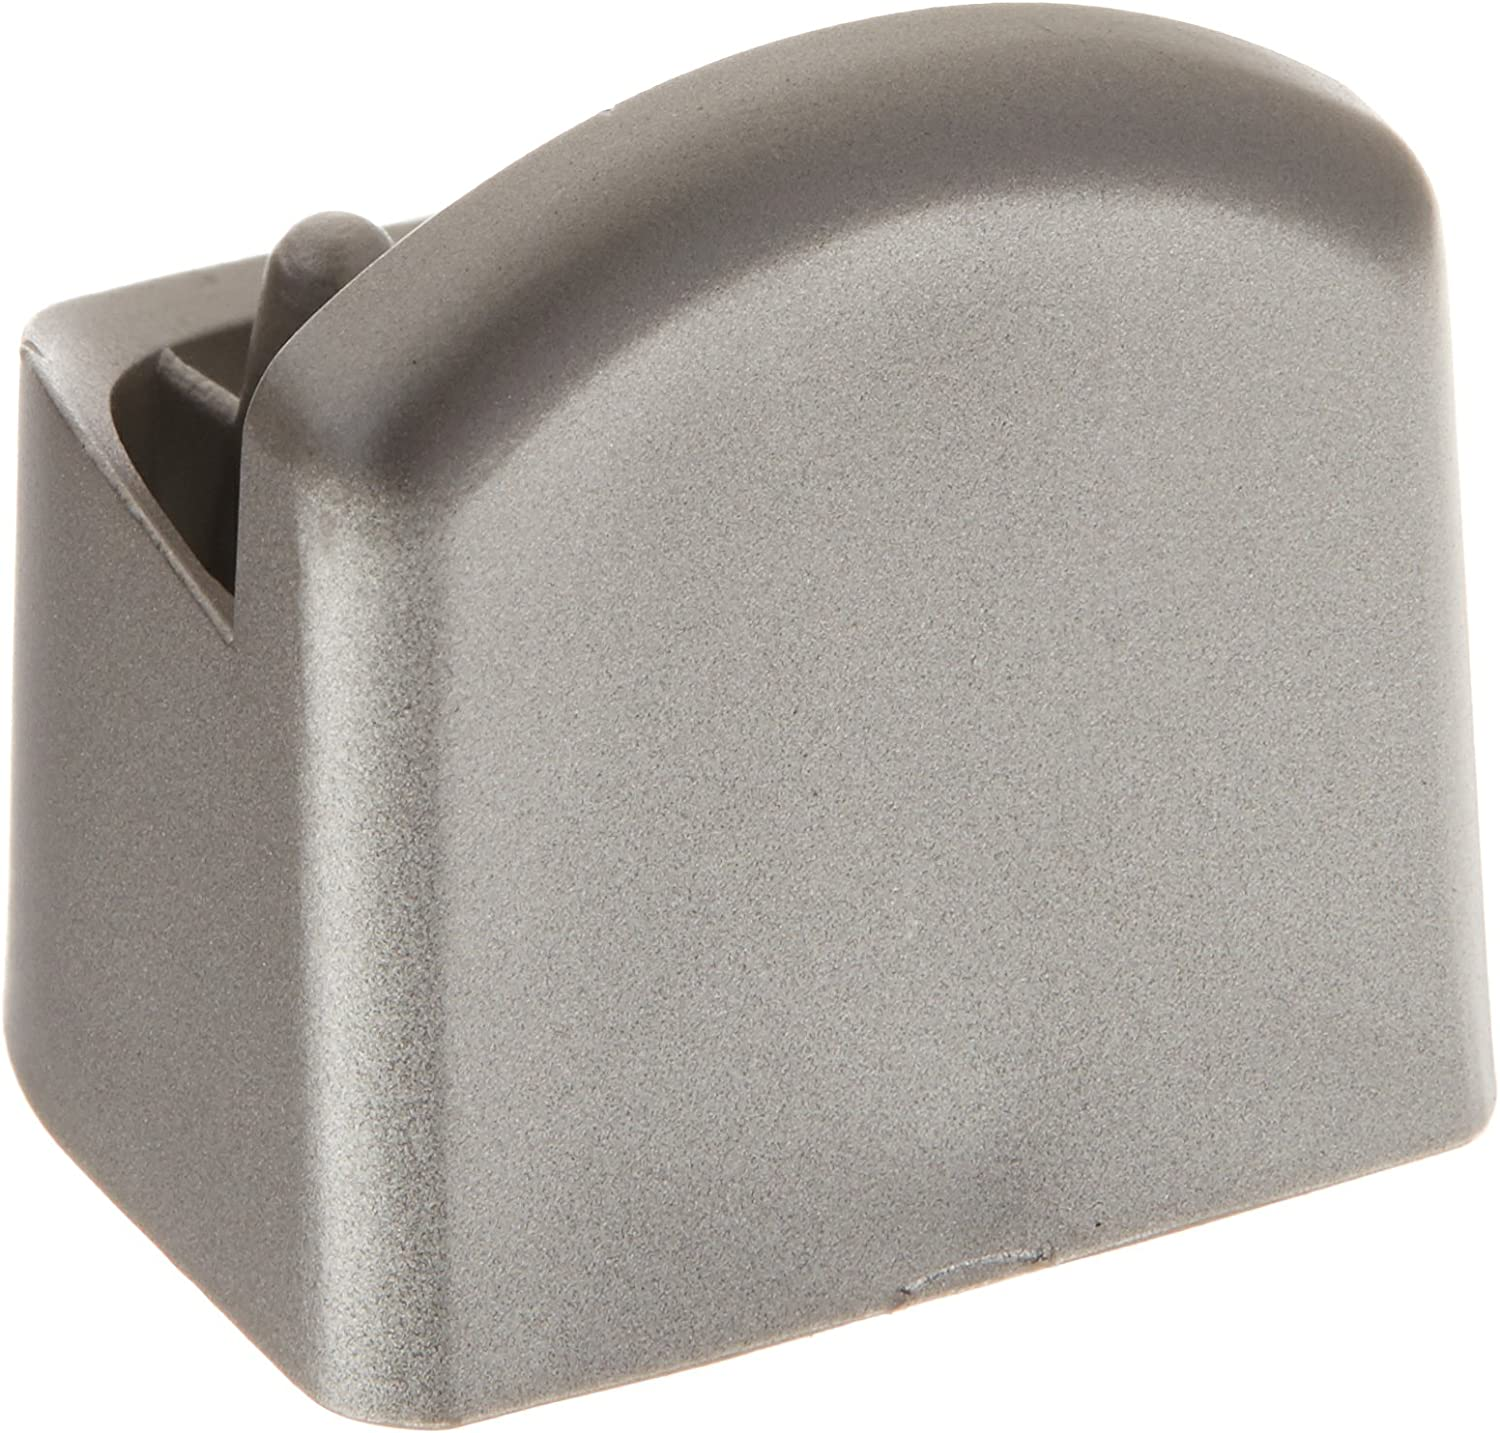 Bosch BOSCH 615352 CAP SHAPED HANDLE